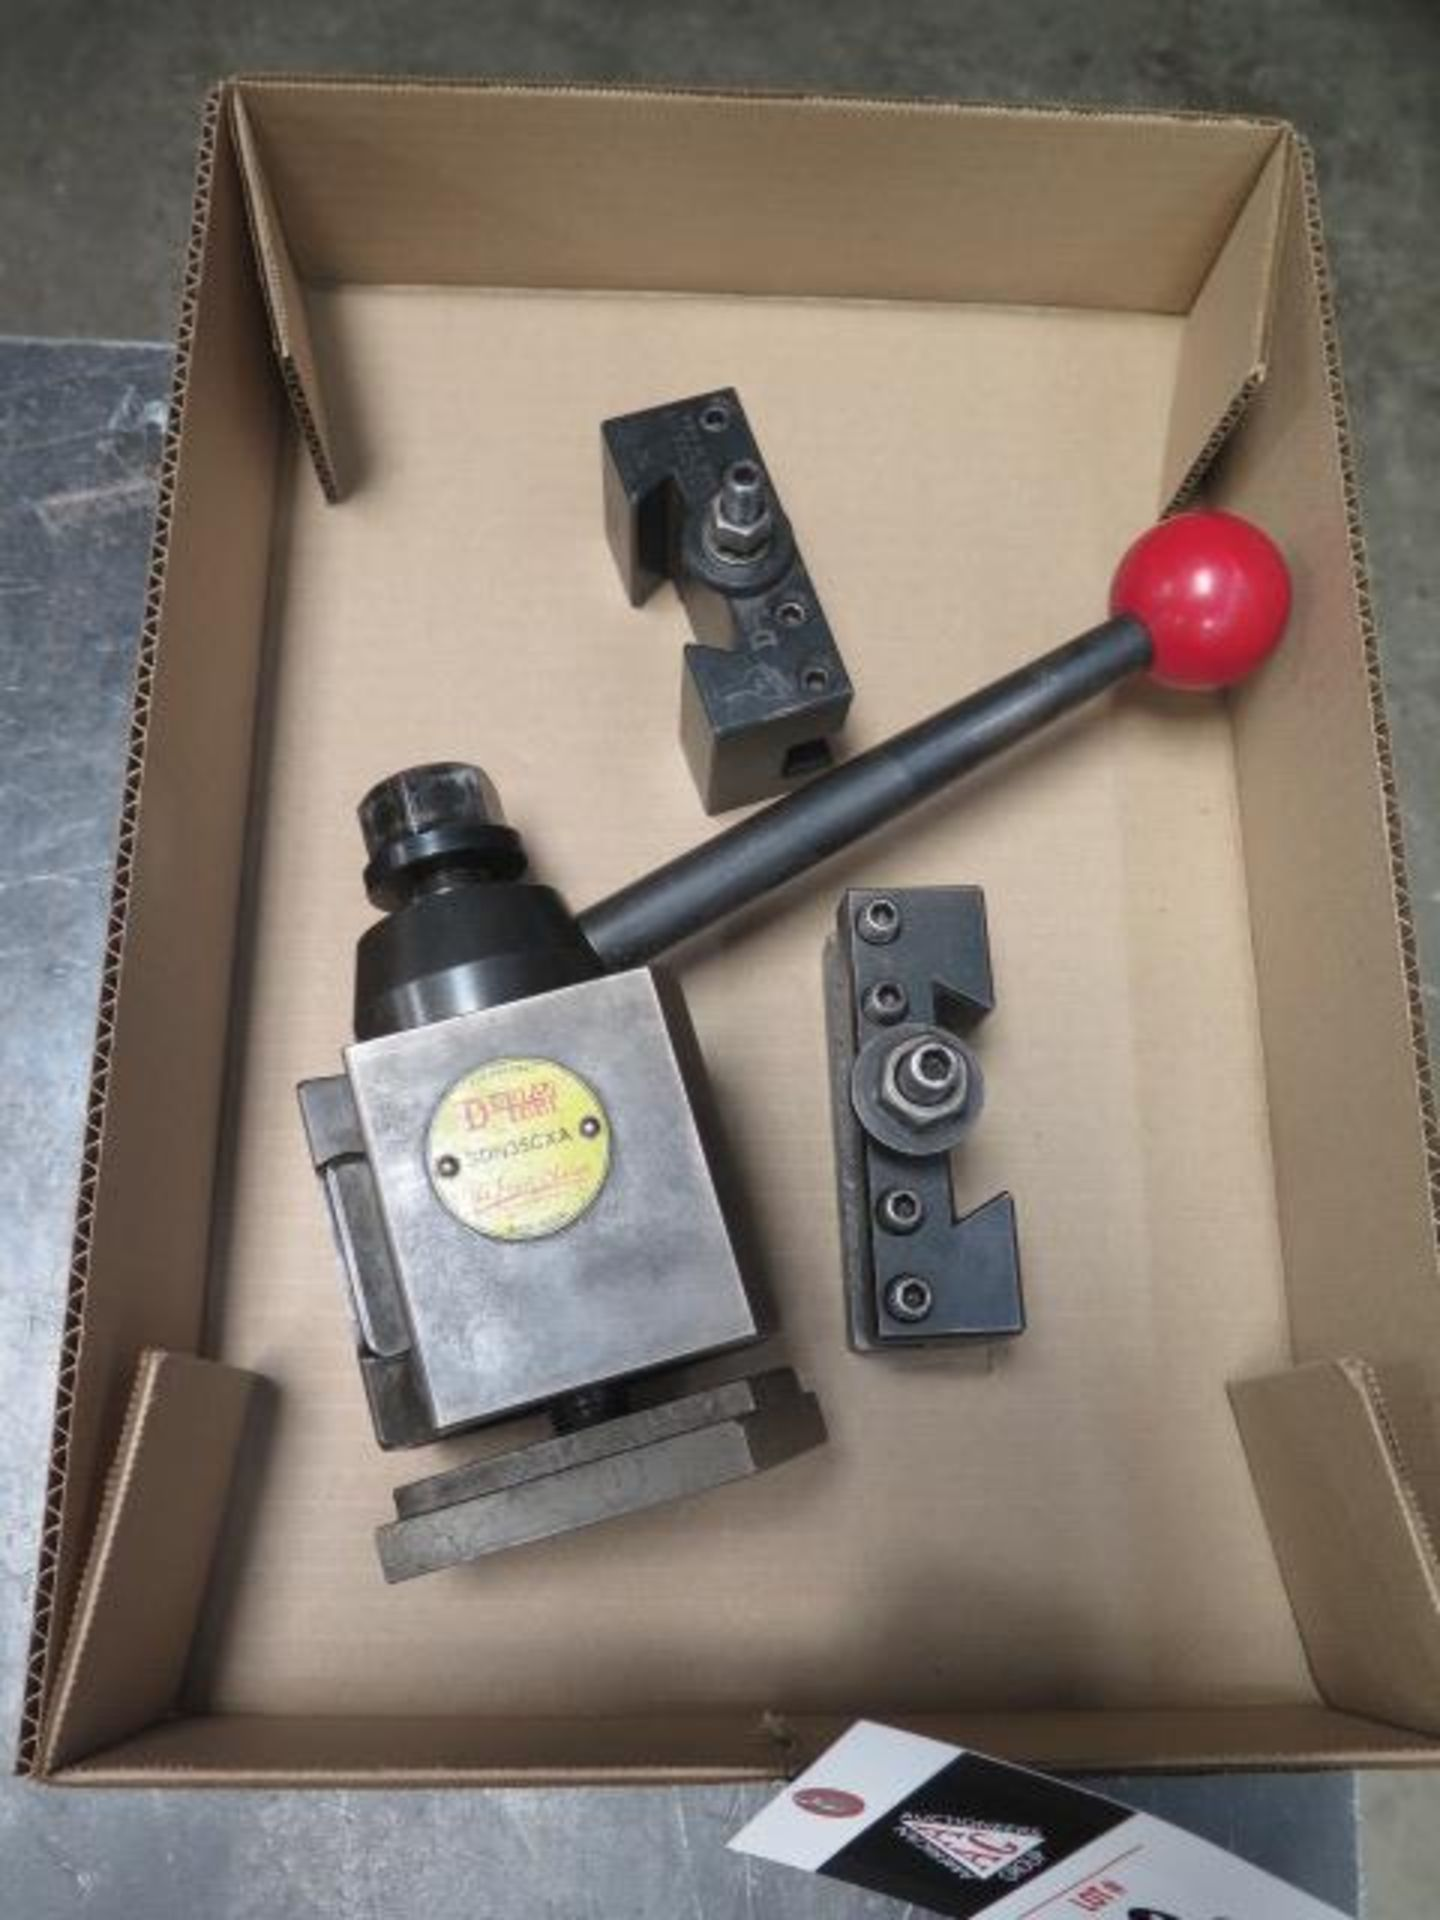 Dorian Tool Post and Tool Holders (SOLD AS-IS - NO WARRANTY) - Image 2 of 4